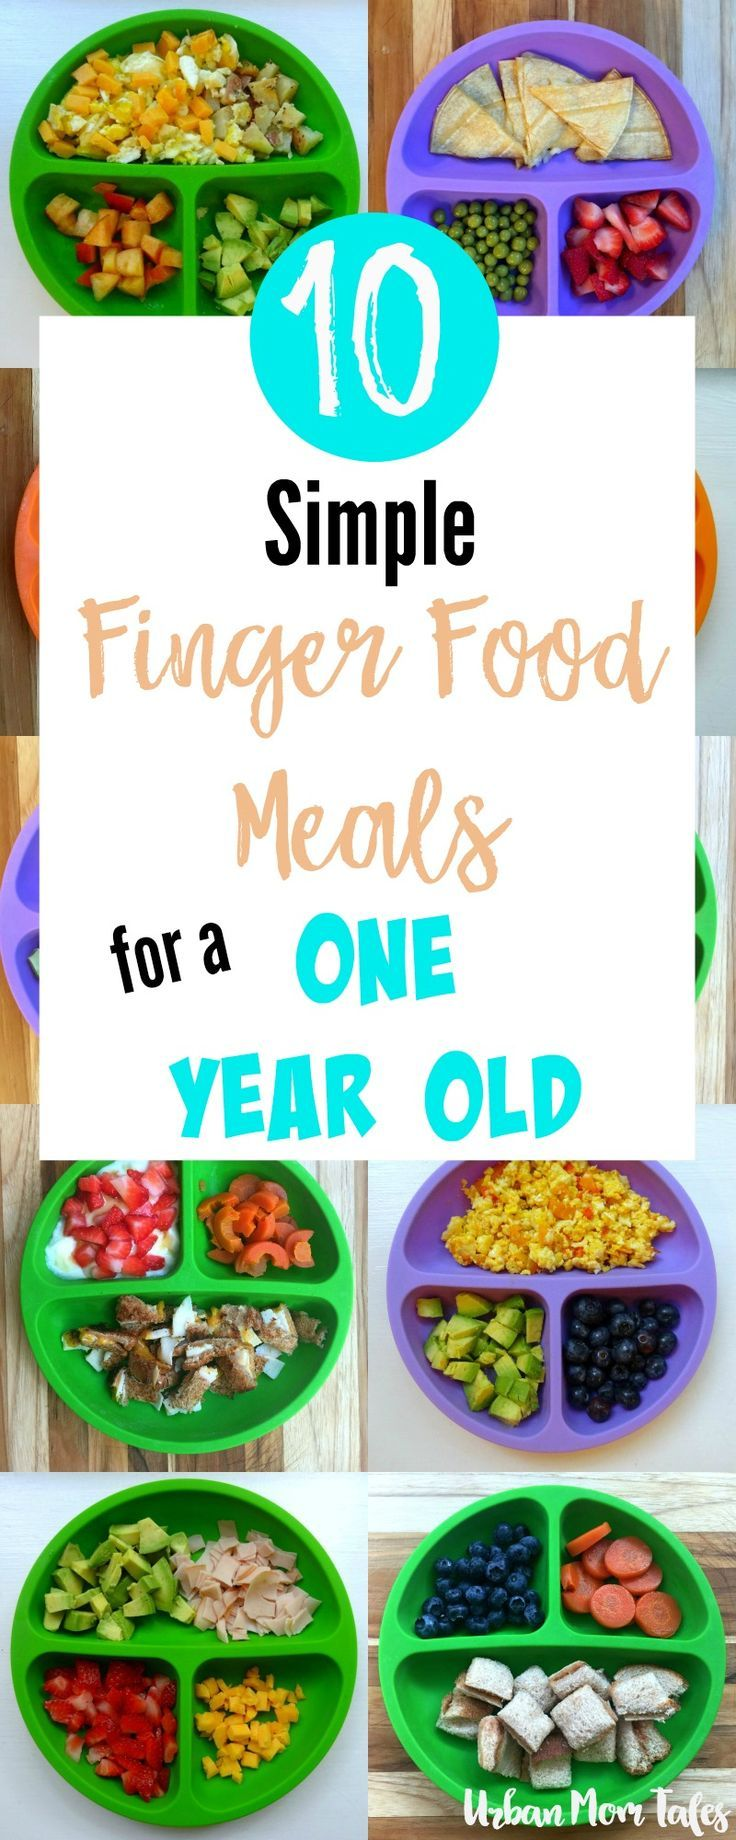 10 simple finger food meals for a one year old simple finger 10 simple finger food meals for a one year old forumfinder Gallery